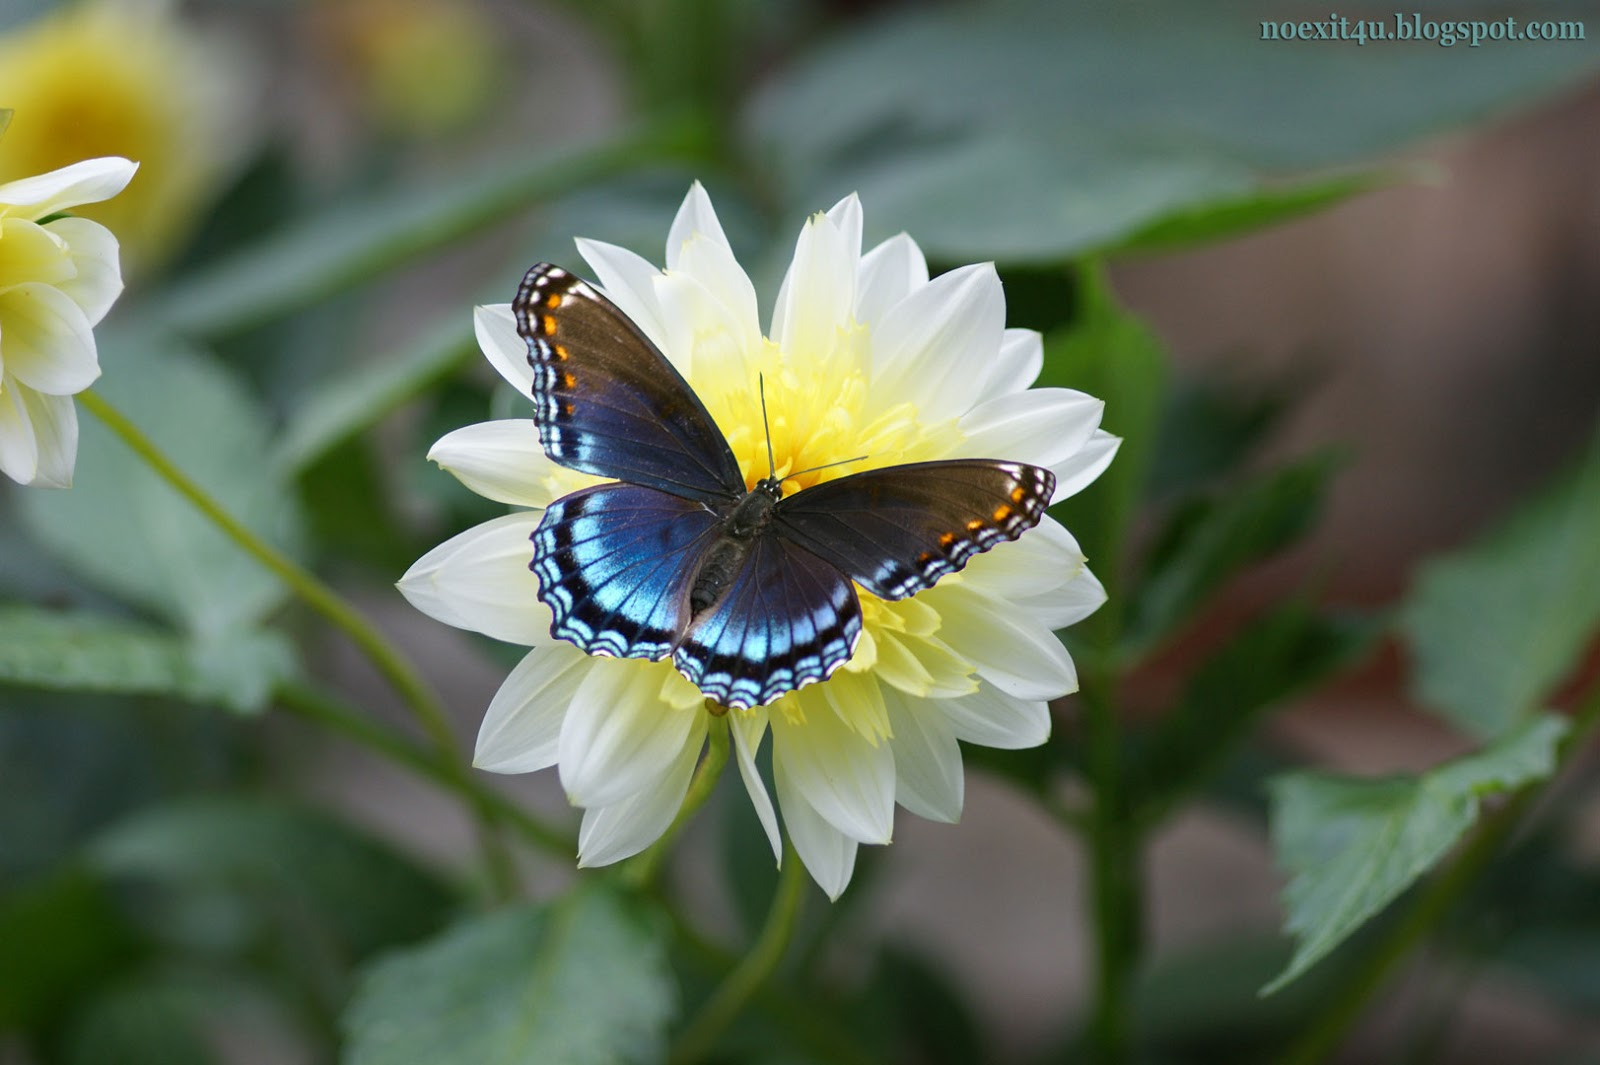 butterfly on a flower wallpaper hd noexit4ucom